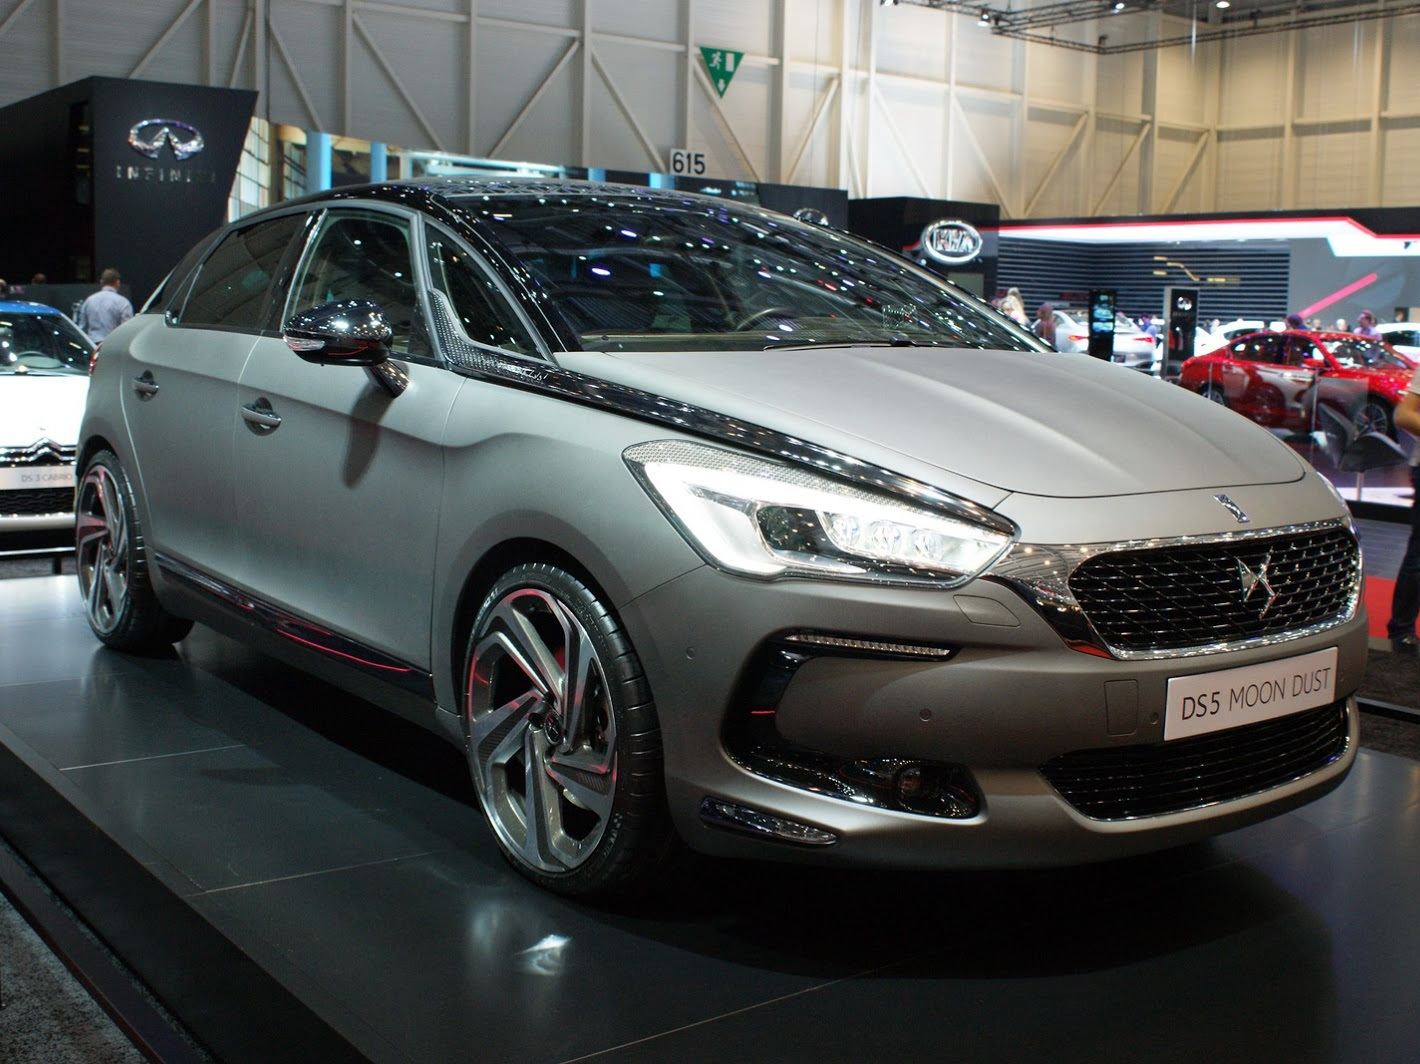 72 A 2020 Citroen DS5 Concept and Review